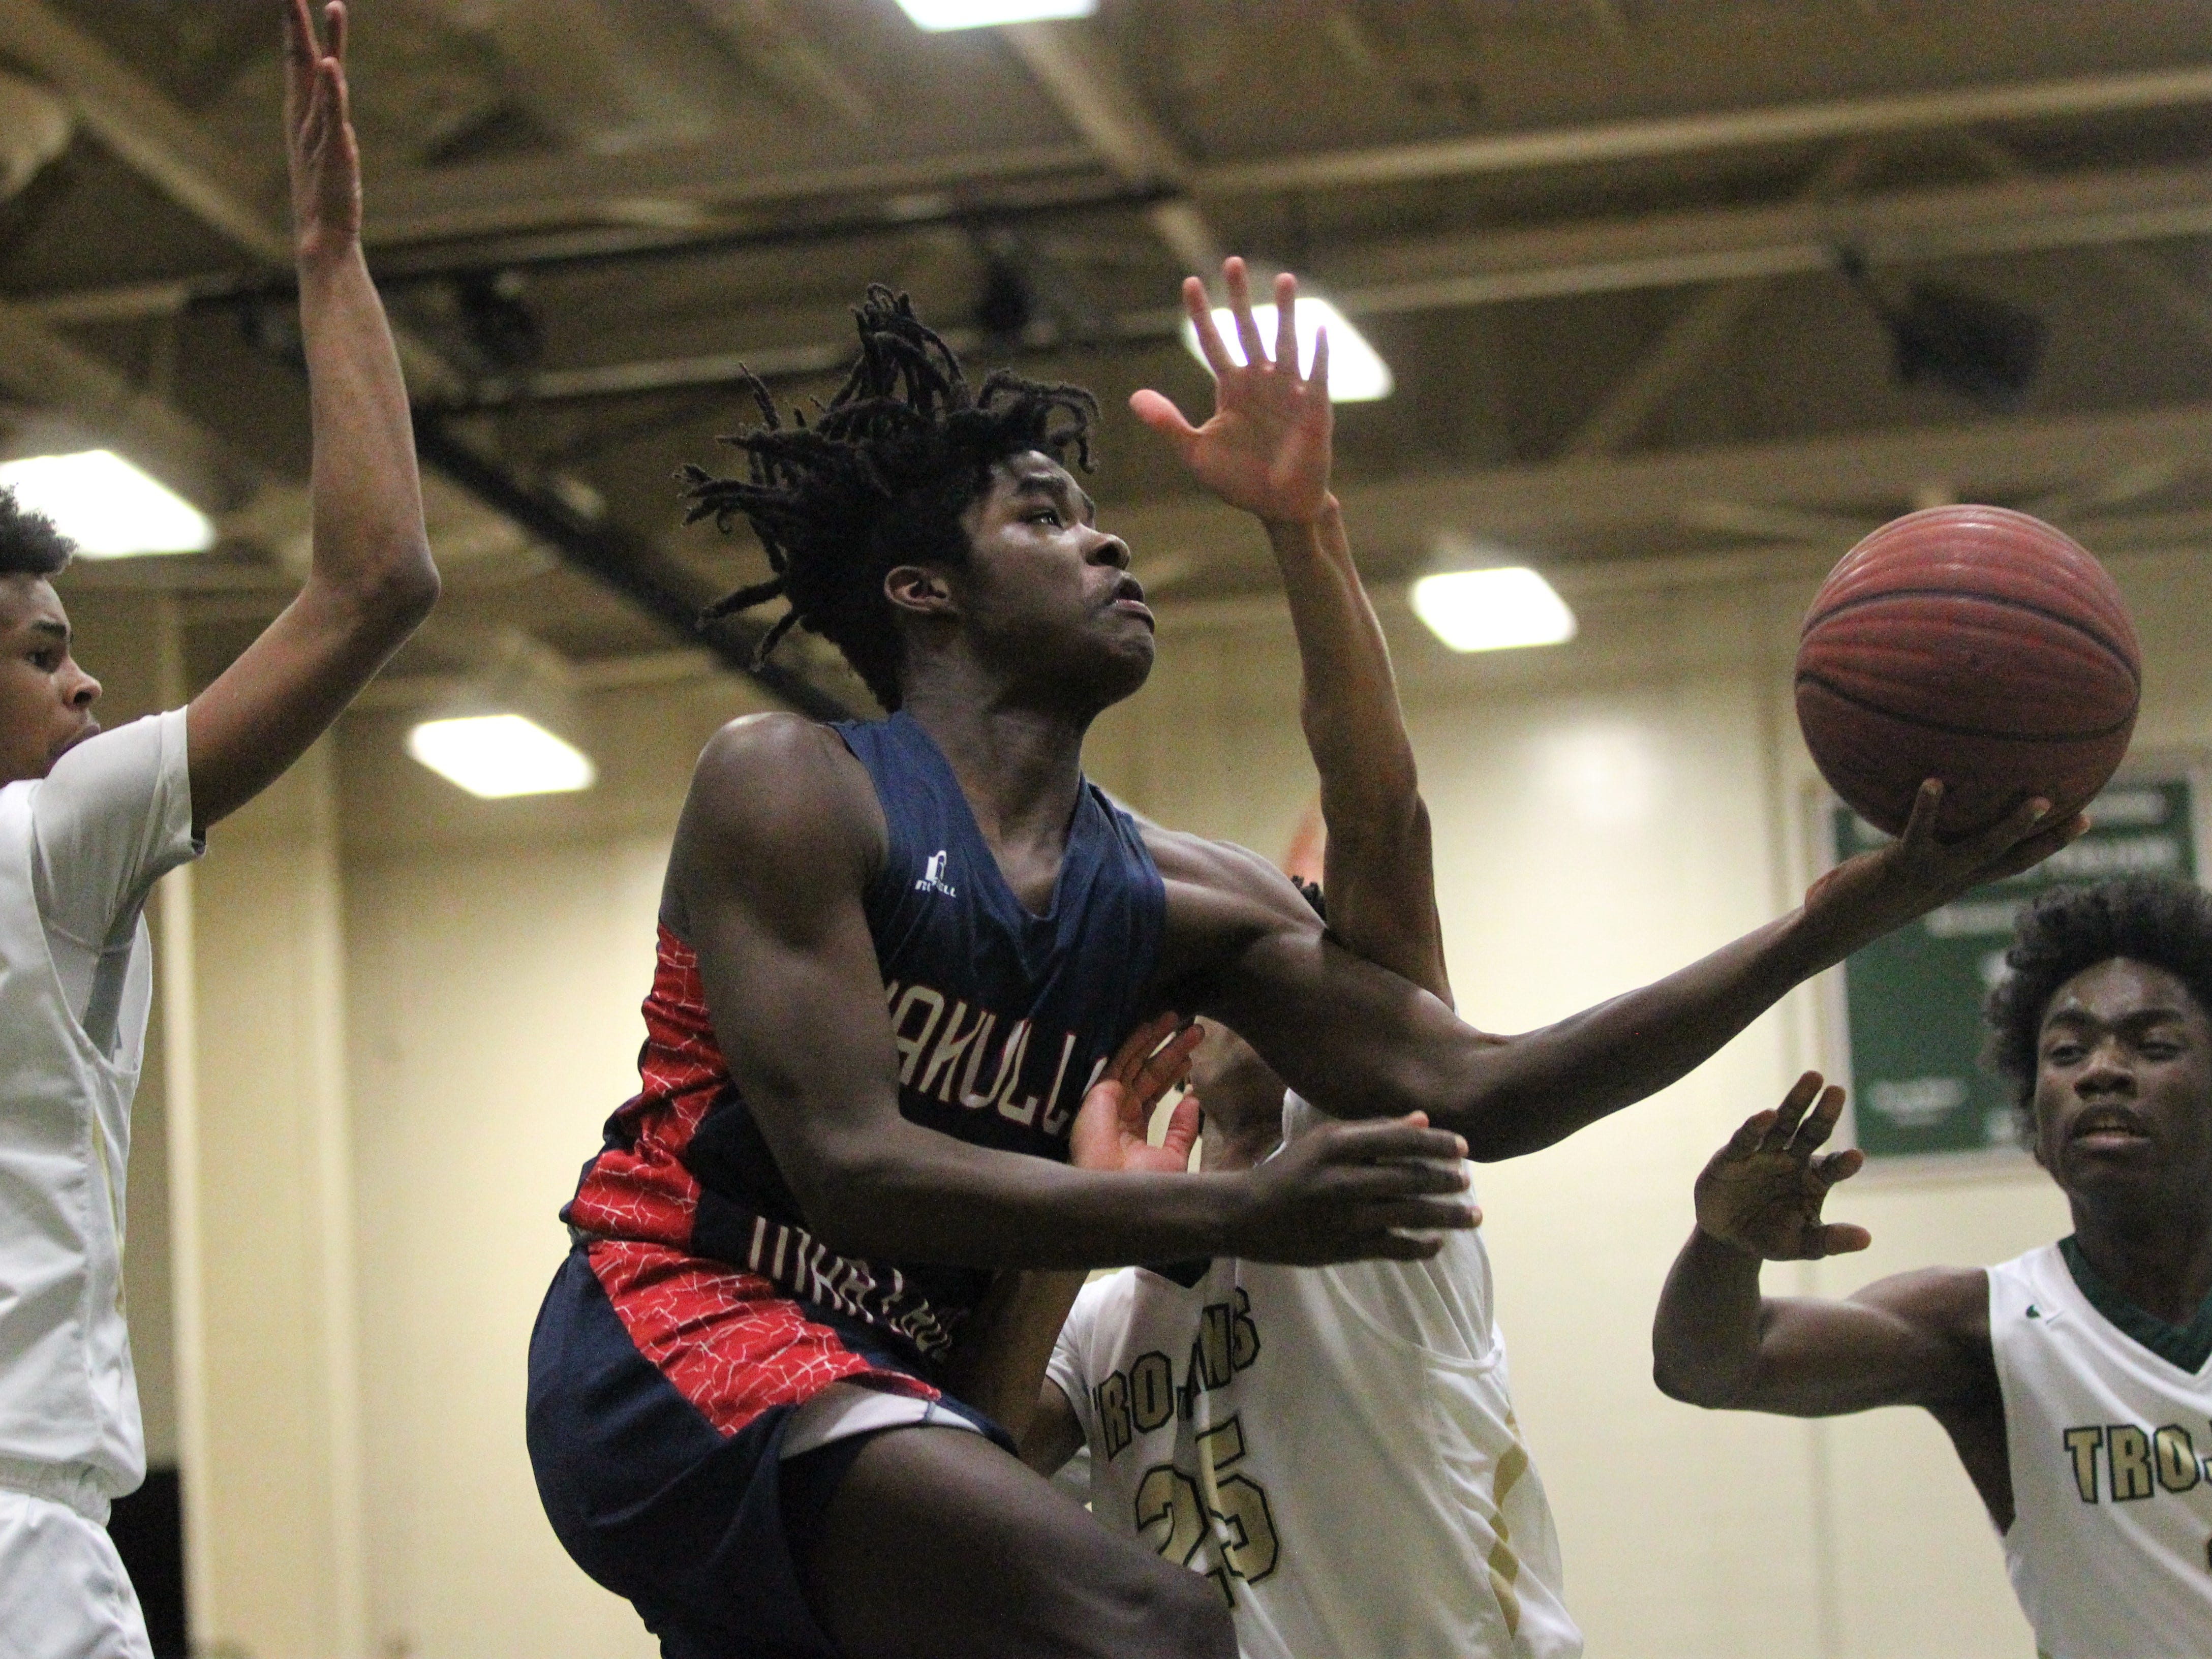 Wakulla's Desmond Greene tries a scoop layup under Lincoln defenders during a game on Jan. 10, 2019.